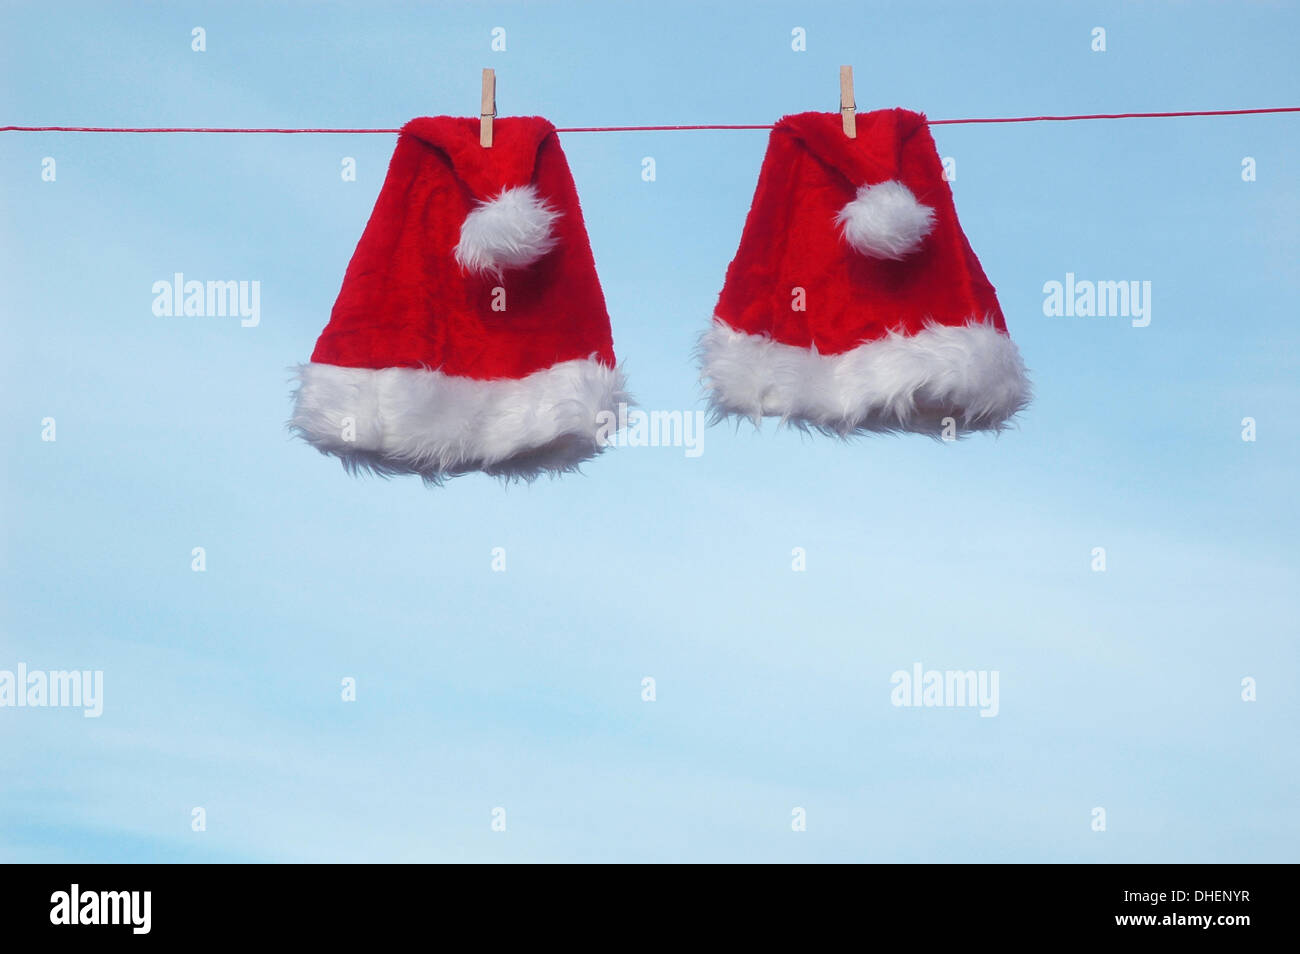 Illustration - Two Santa Claus hats are pictured on a clothesline, 28 December 2009. Photo: Berliner Verlag/Steinach Stock Photo